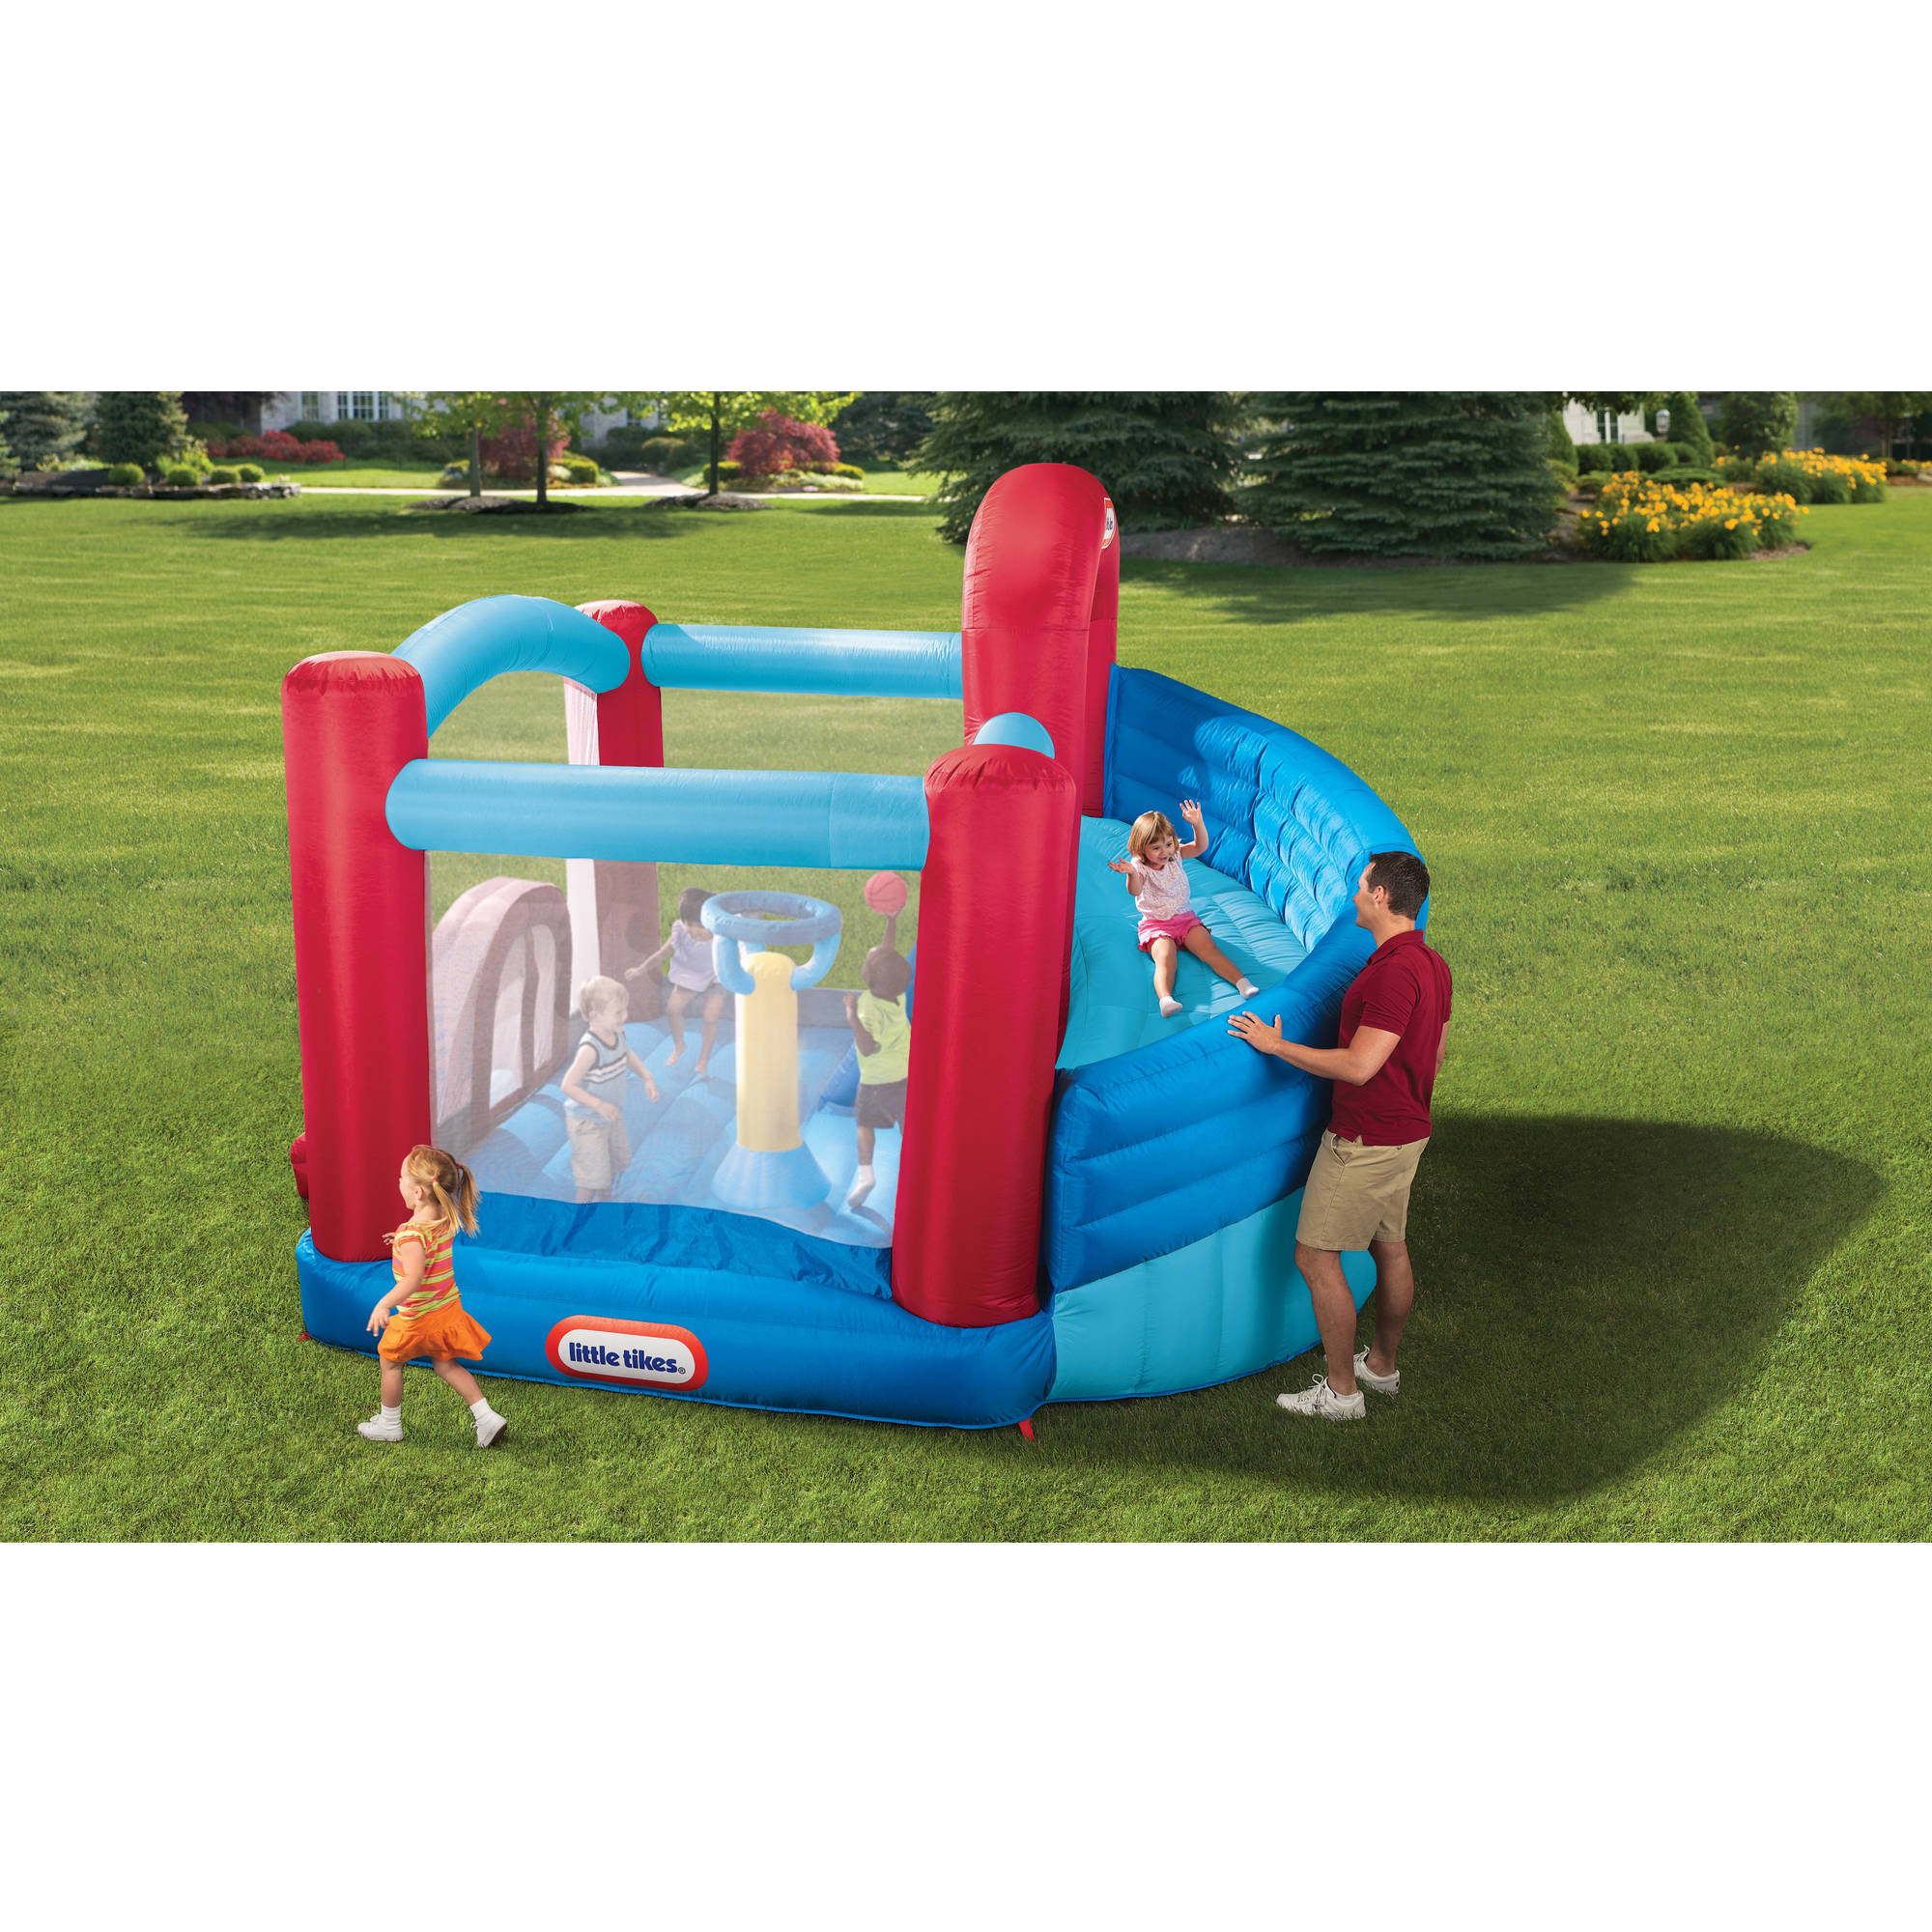 Little Tikes Super Spiral Bouncer Walmart